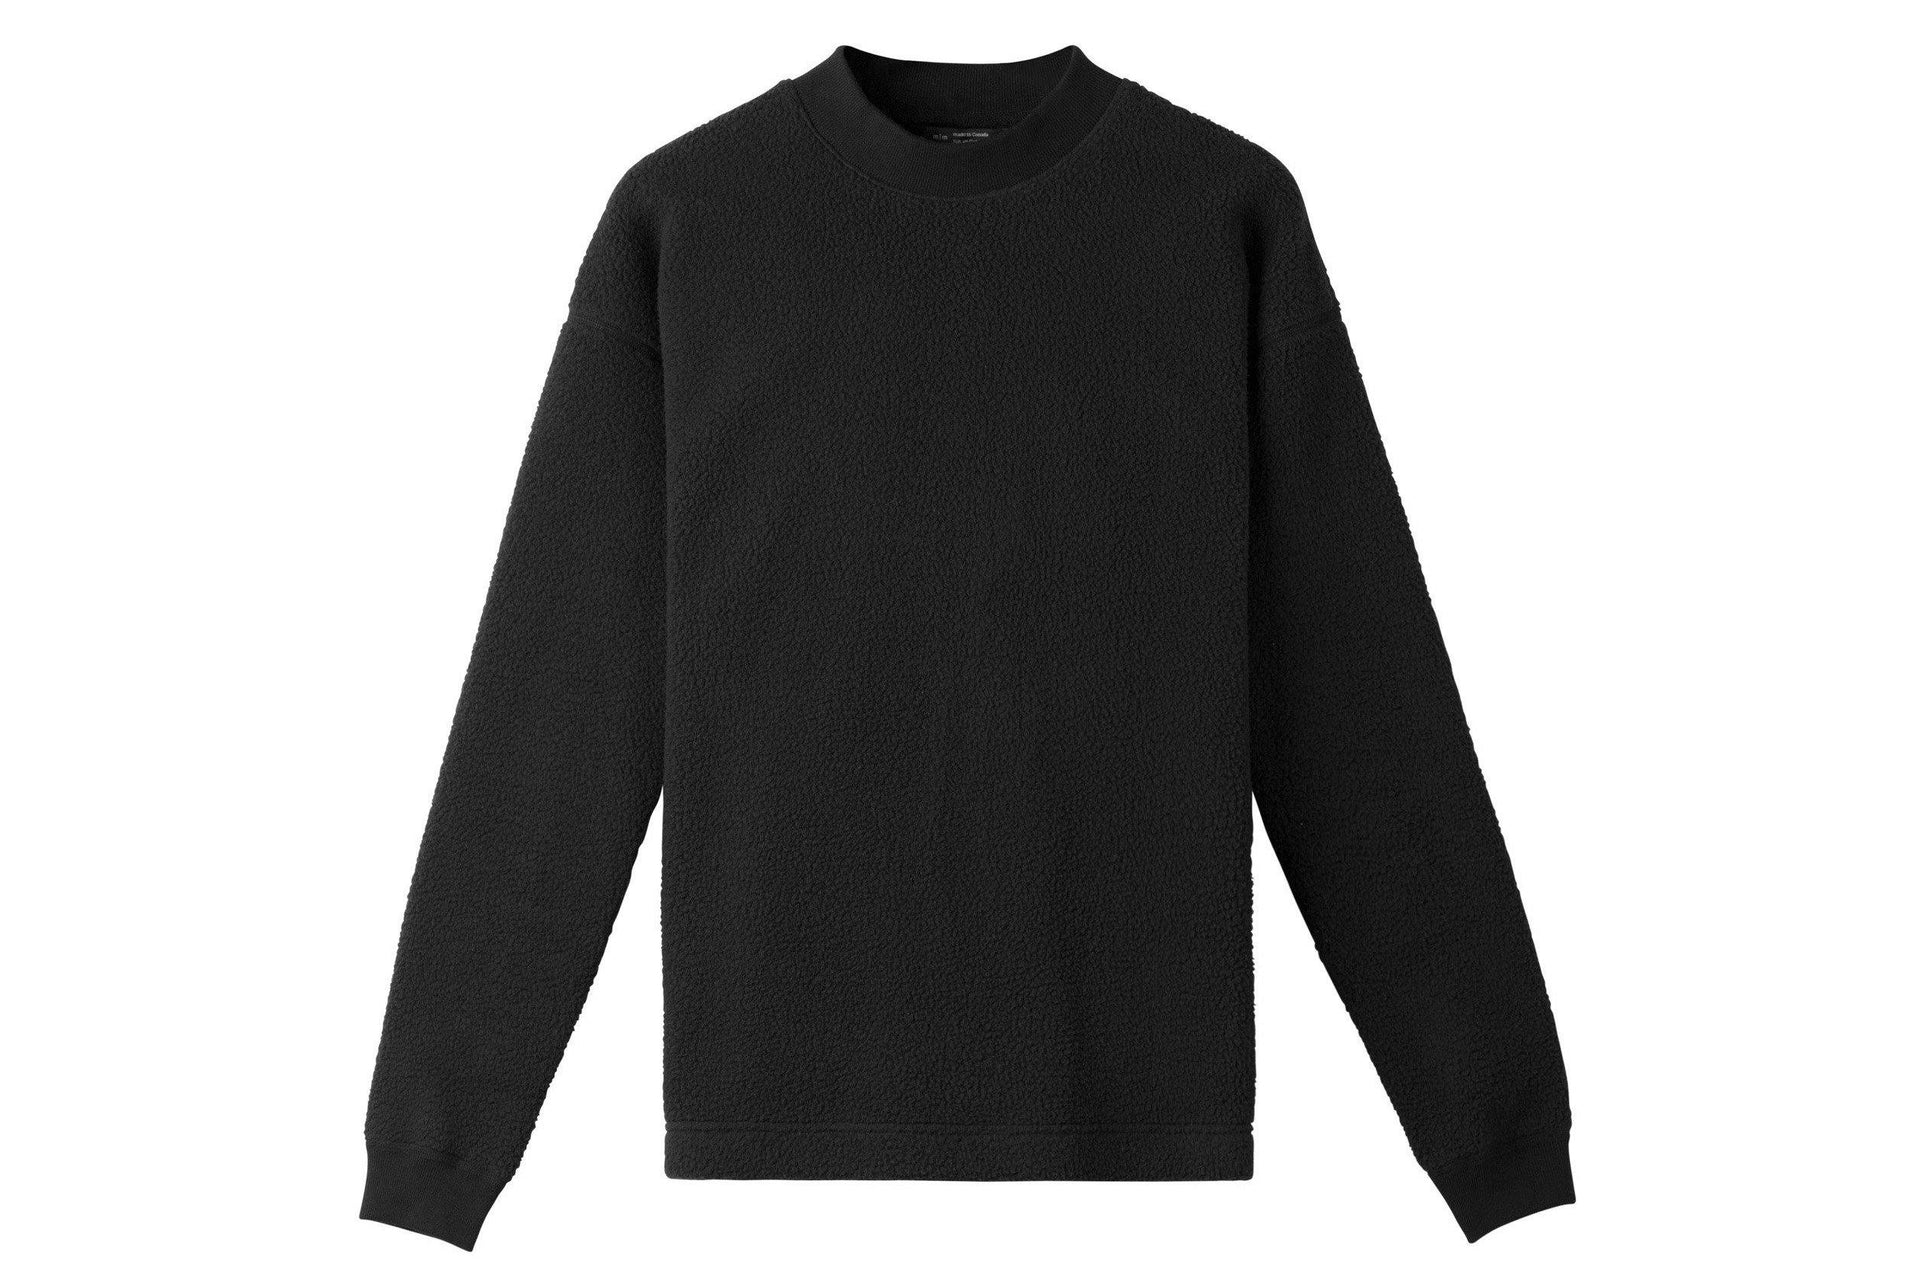 SHERLING CREWNECK MENS SOFTGOODS WINGS+HORNS BLACK S